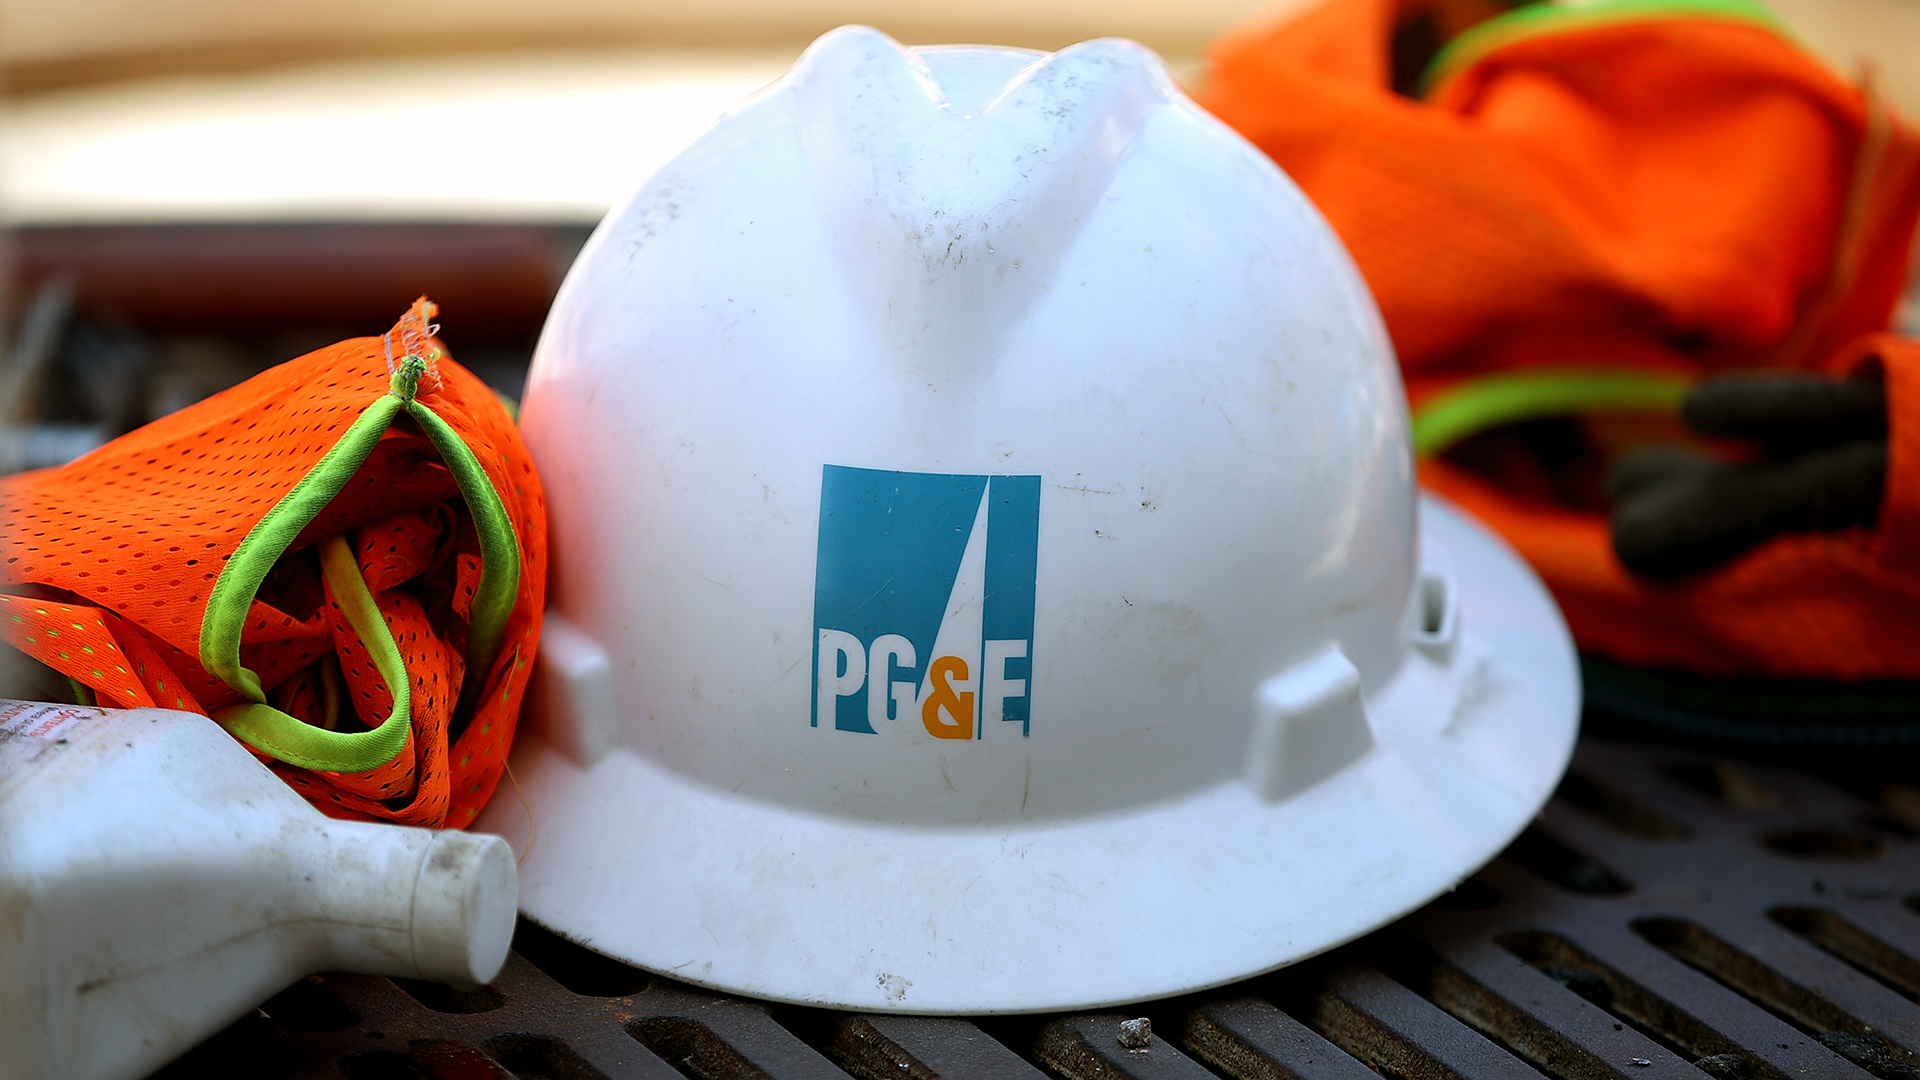 Pacific Gas and Electric helmet PG&E-159532.jpg03857005